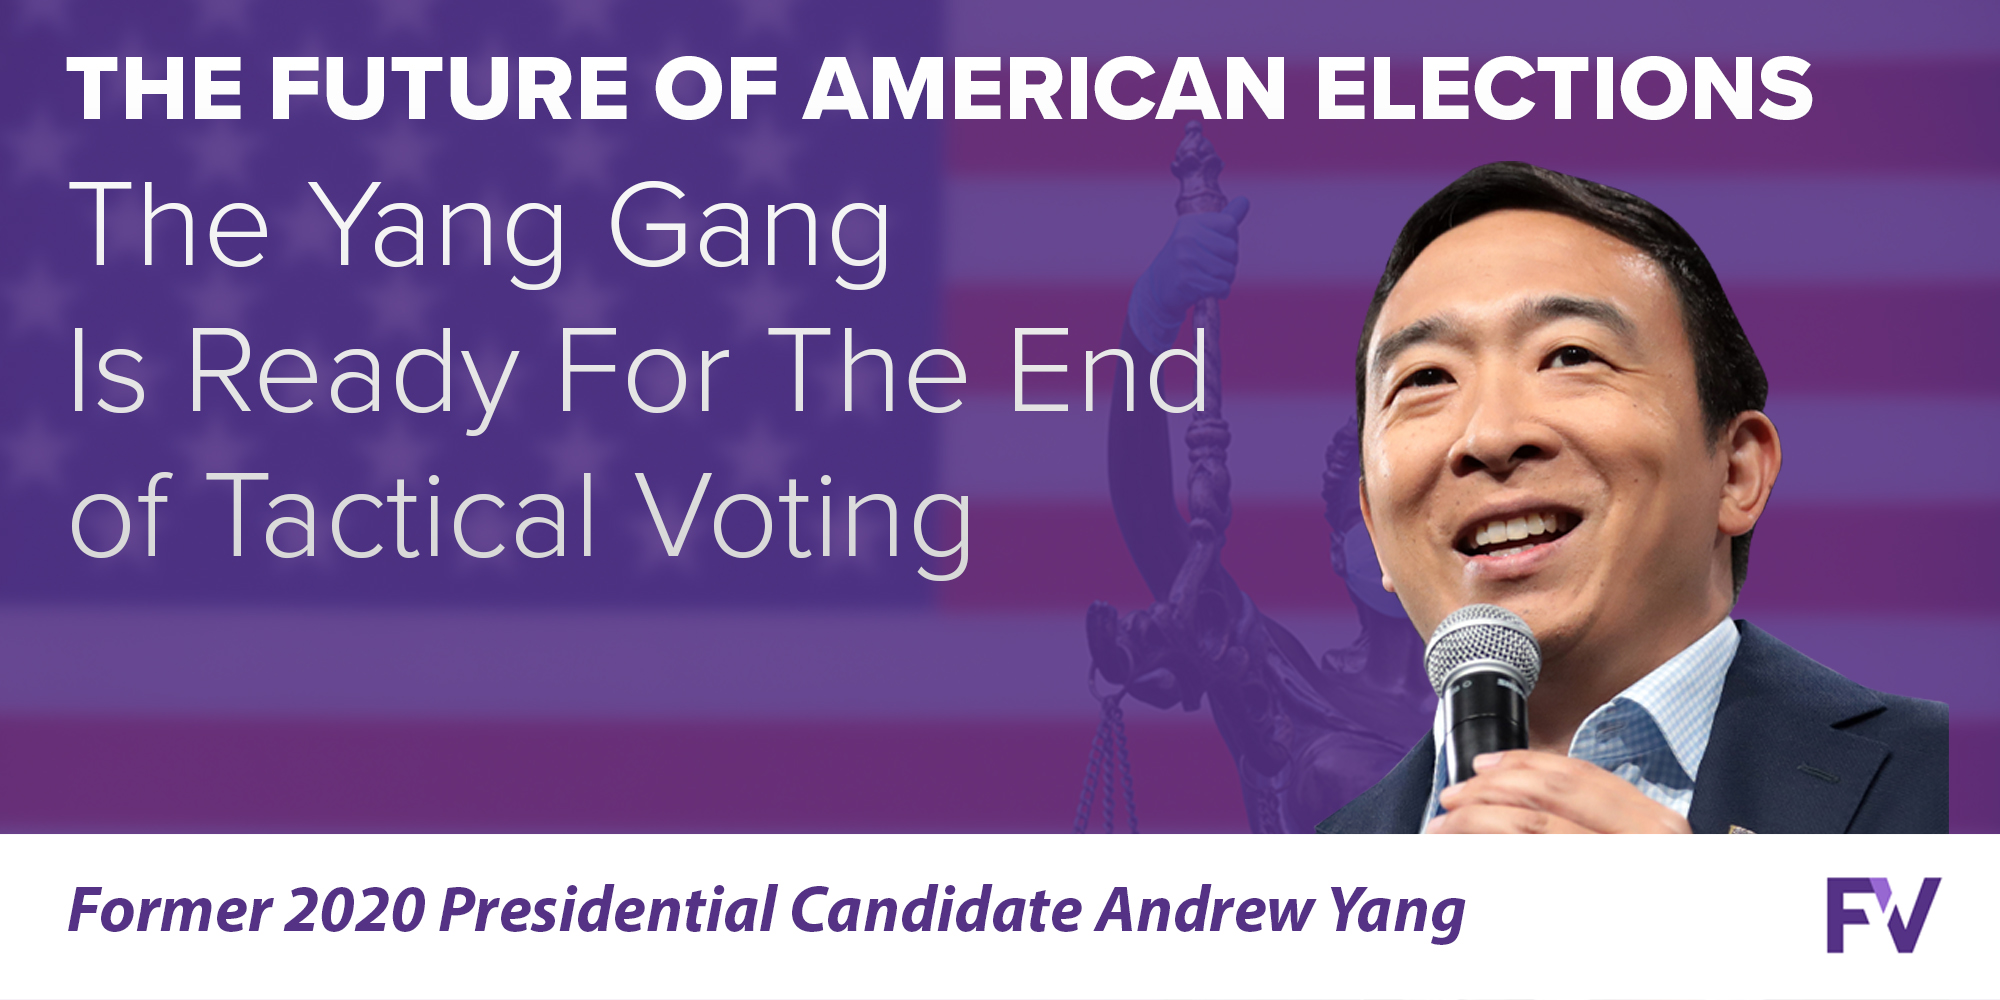 FairVote Webinar Rewind: The Yang Gang Is Ready For The End of Tactical Voting